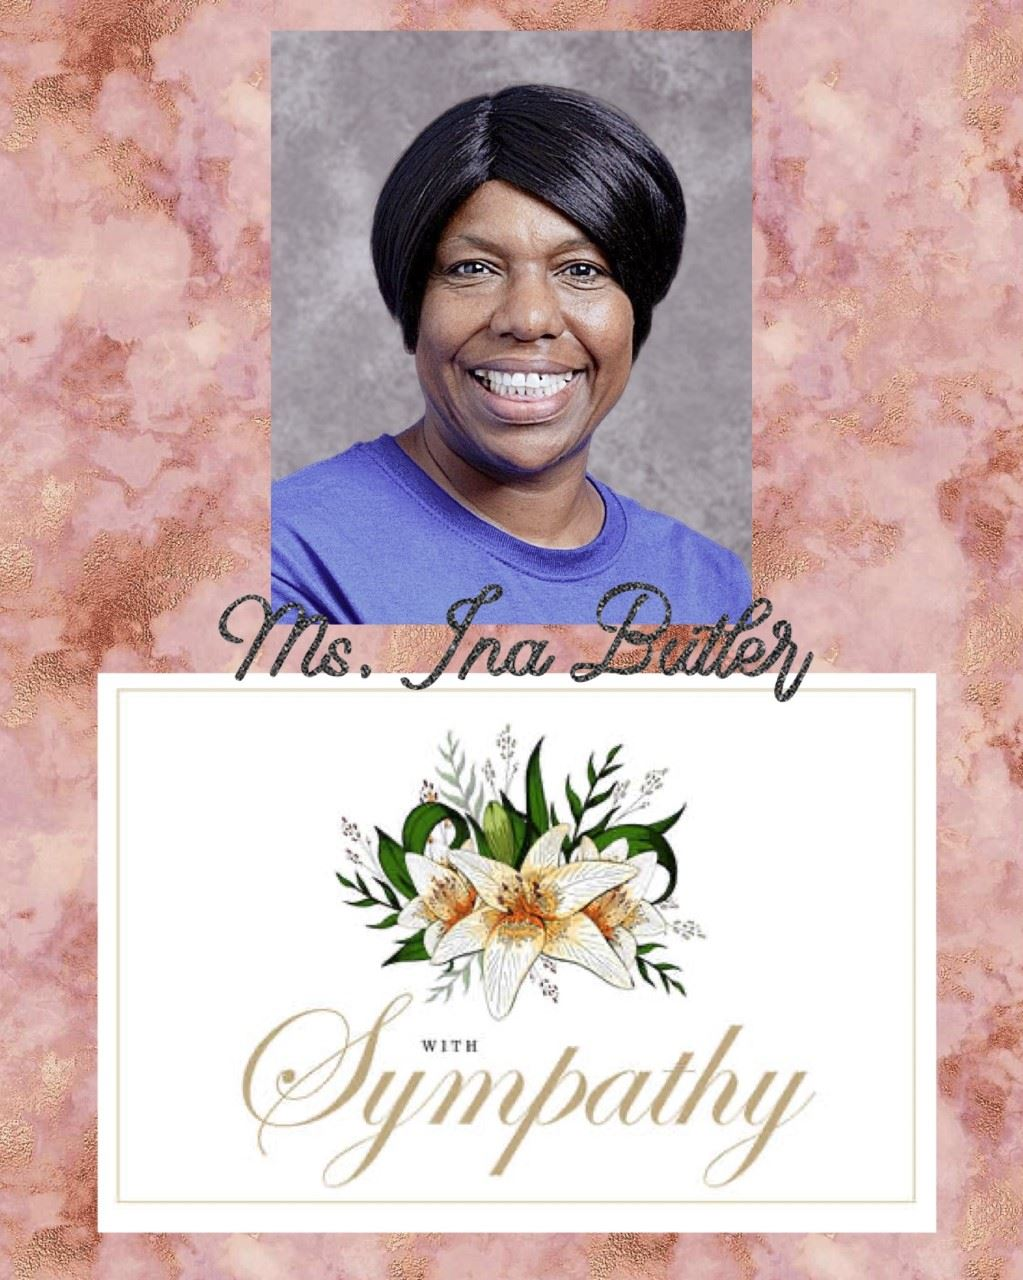 In Memory of Ms. Ina Butler